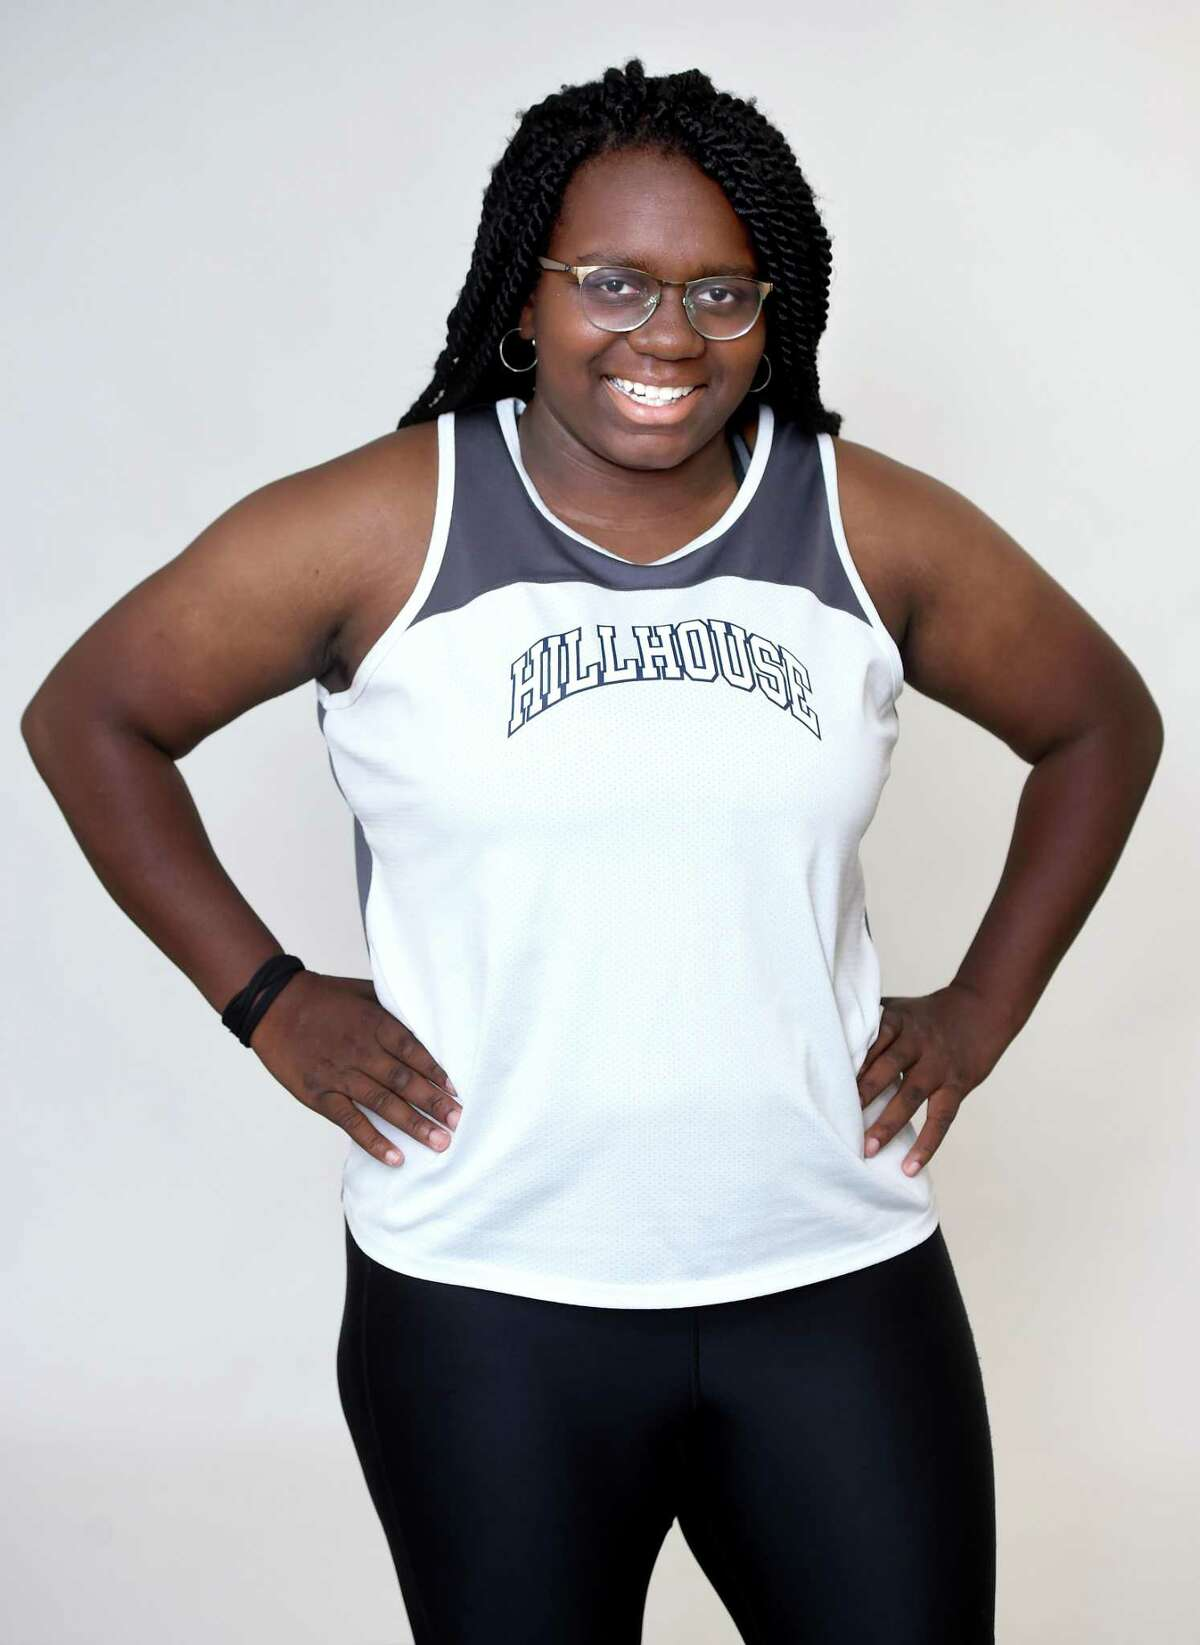 All-Area track and field athlete Leah Moore of Hillhouse High School photographed on June 19, 2019.